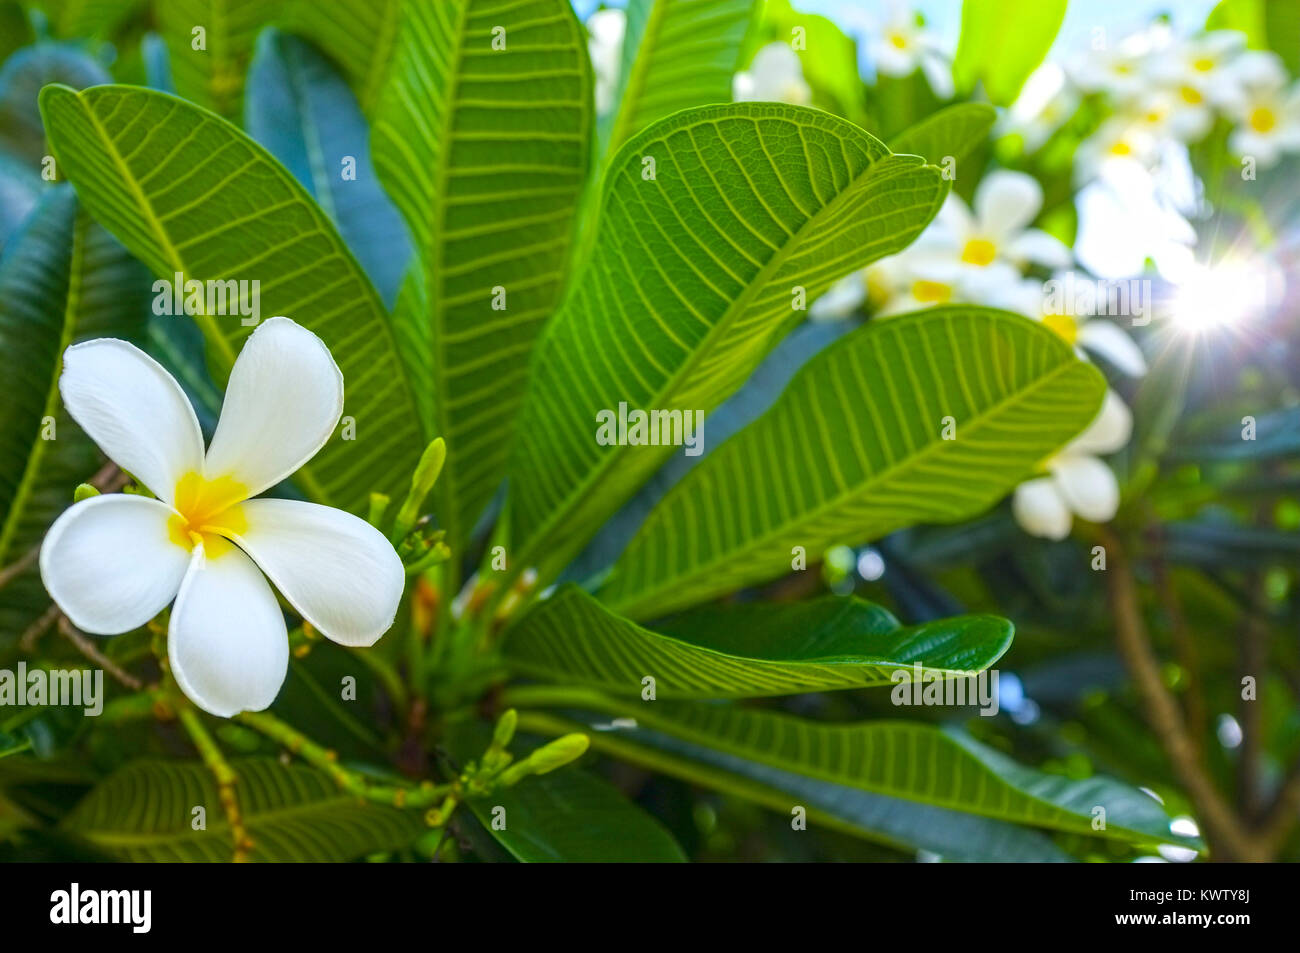 plumeria-alba-flower-on-the-tree-KWTY8J.jpg